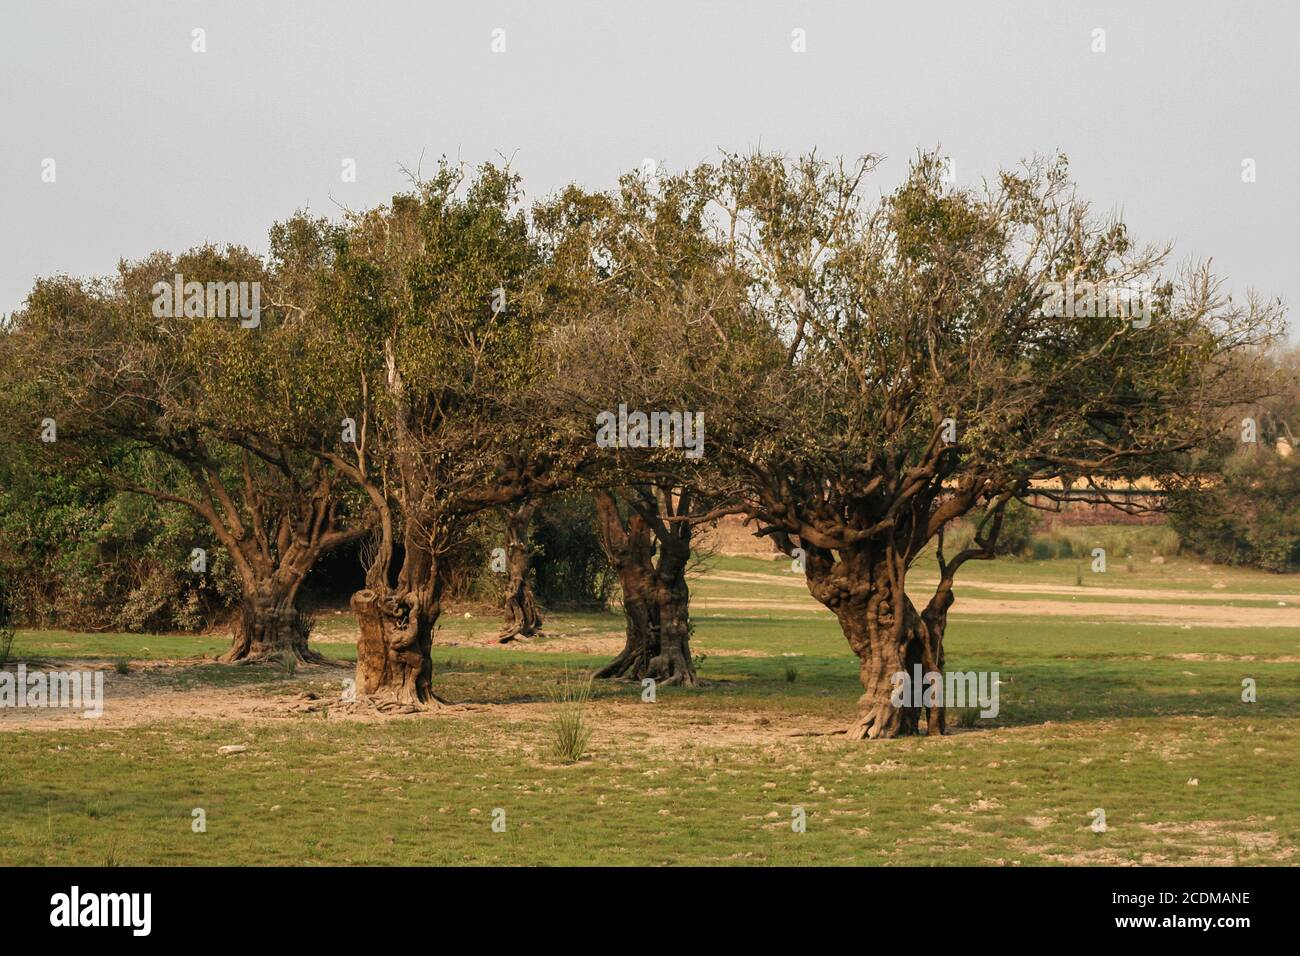 Villa Florida, Paraguay. 9th September, 2007. A general view of twisted and curled trees standing on a riverside along the Tebicuary River on the border of Paraguari and Misiones Department, in the Eastern Region (Region Oriental) of Paraguay. Stock Photo